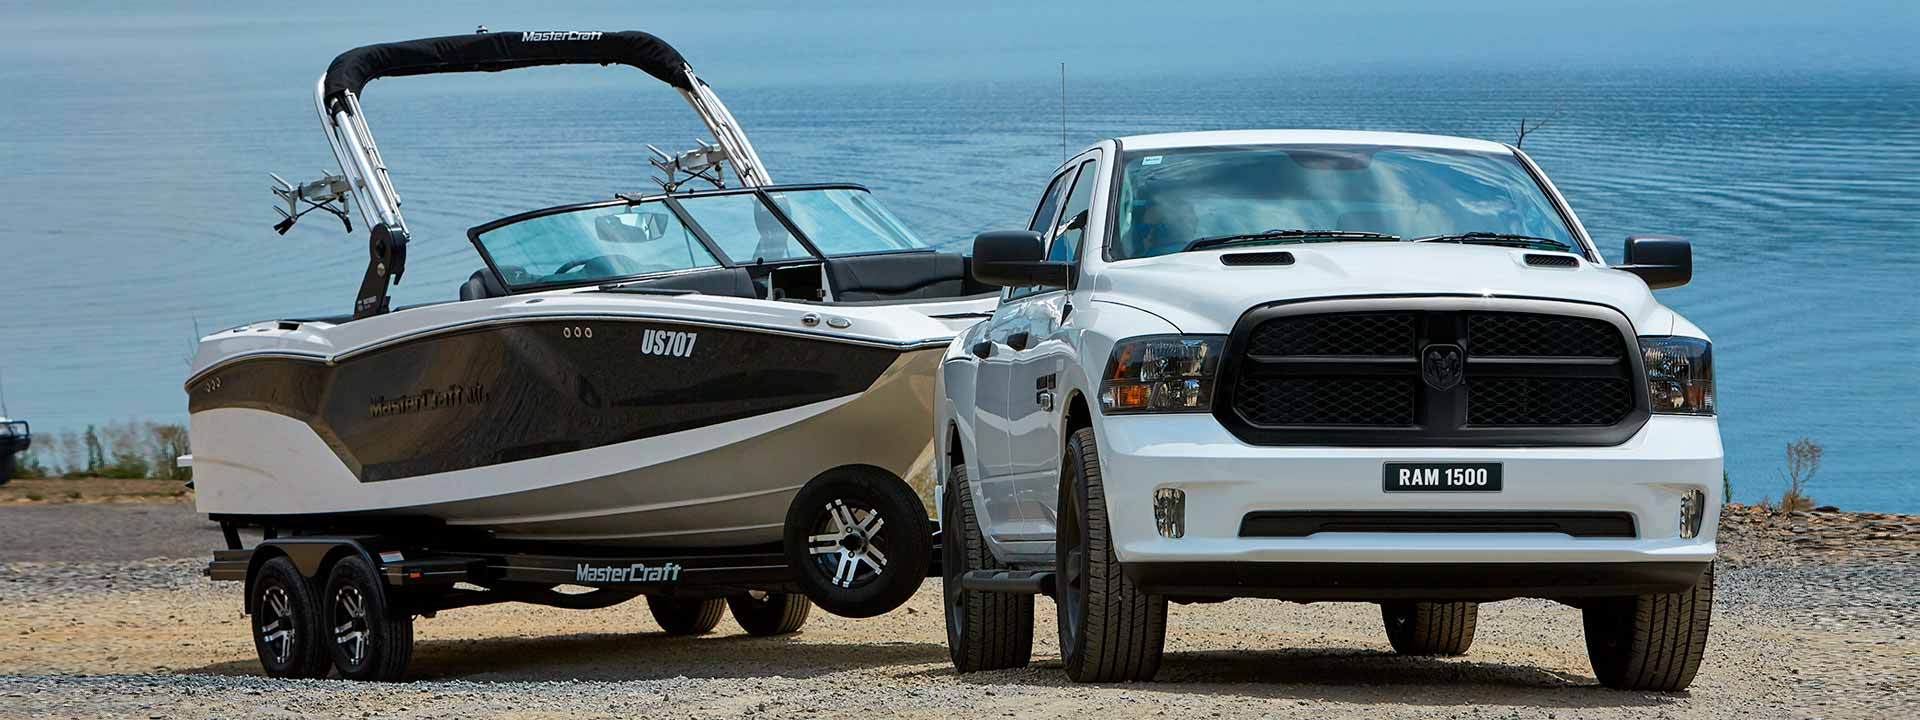 Best In-Class Towing